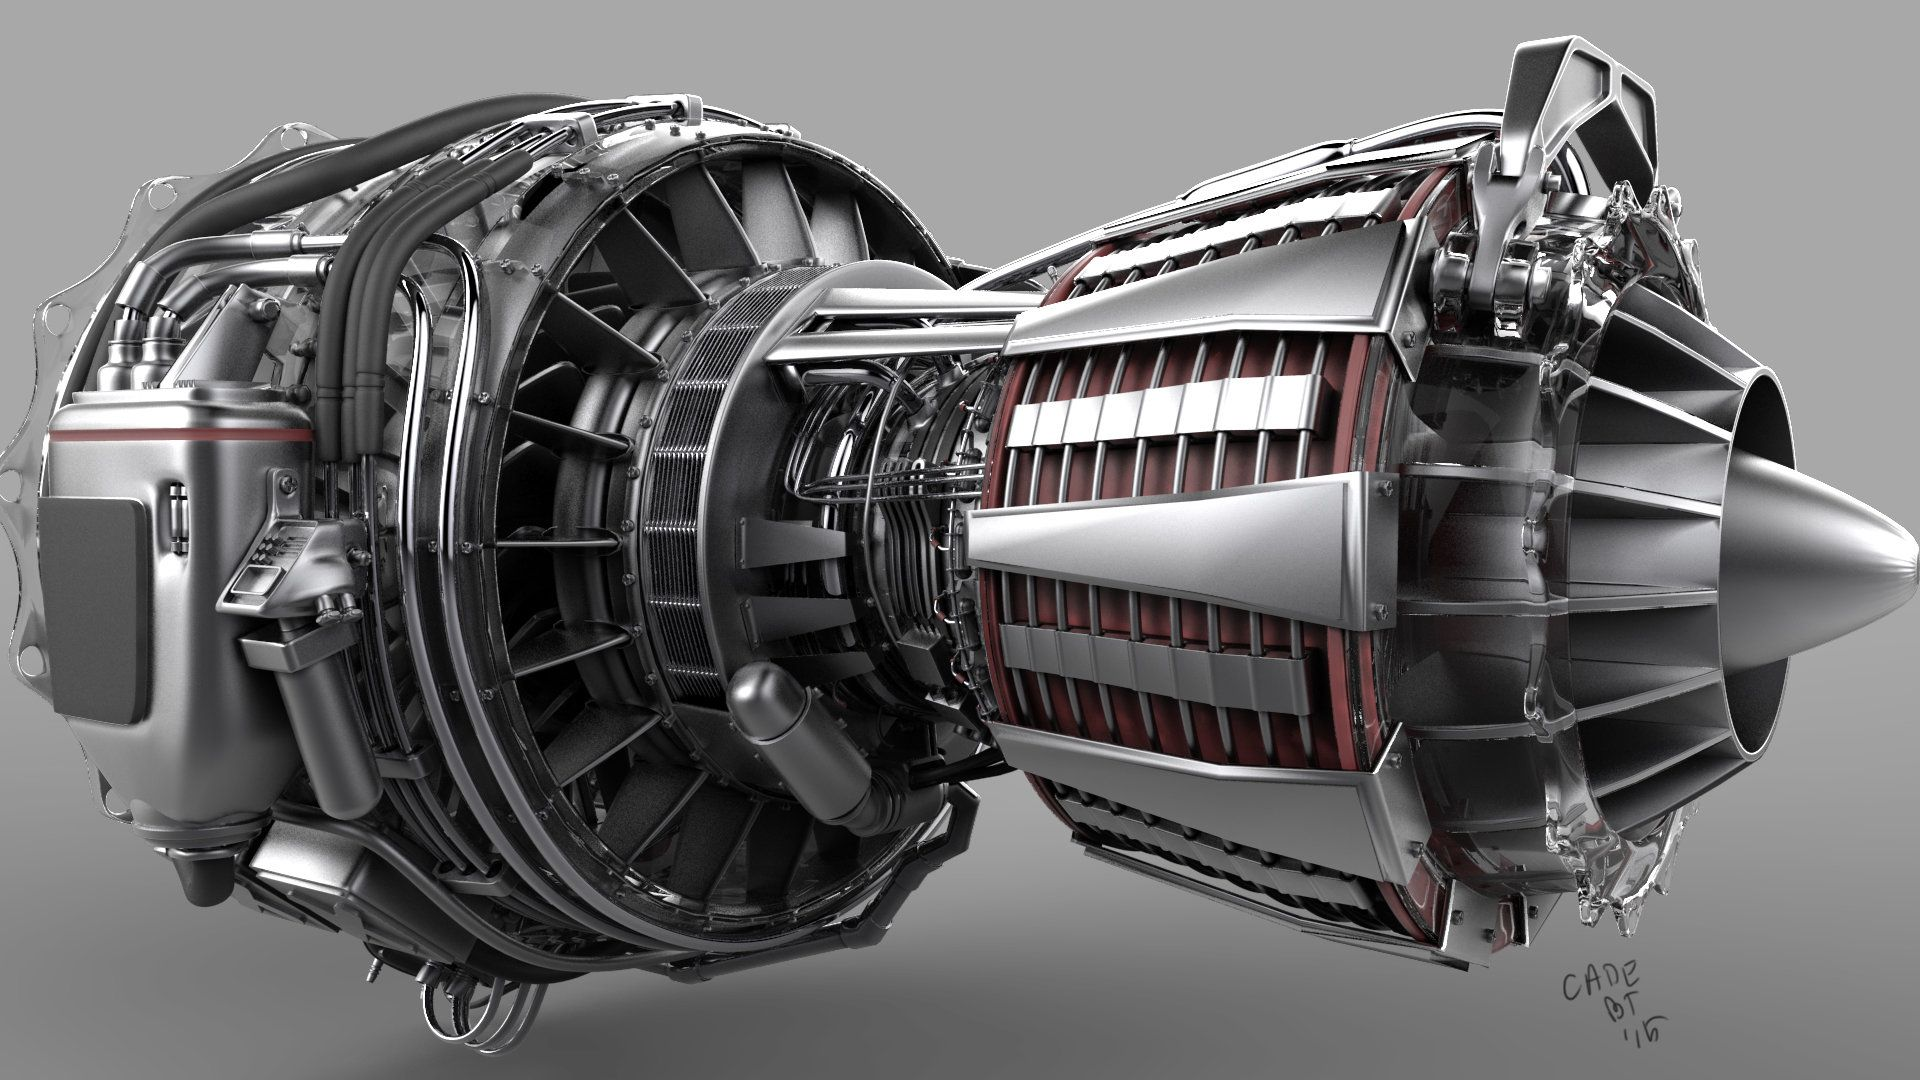 Read Why Jet Engine Have Reached A Great Height In Modern Engineering At Jet Parts 360 Jetparts360 Jet Engine Engineering Rocket Engine